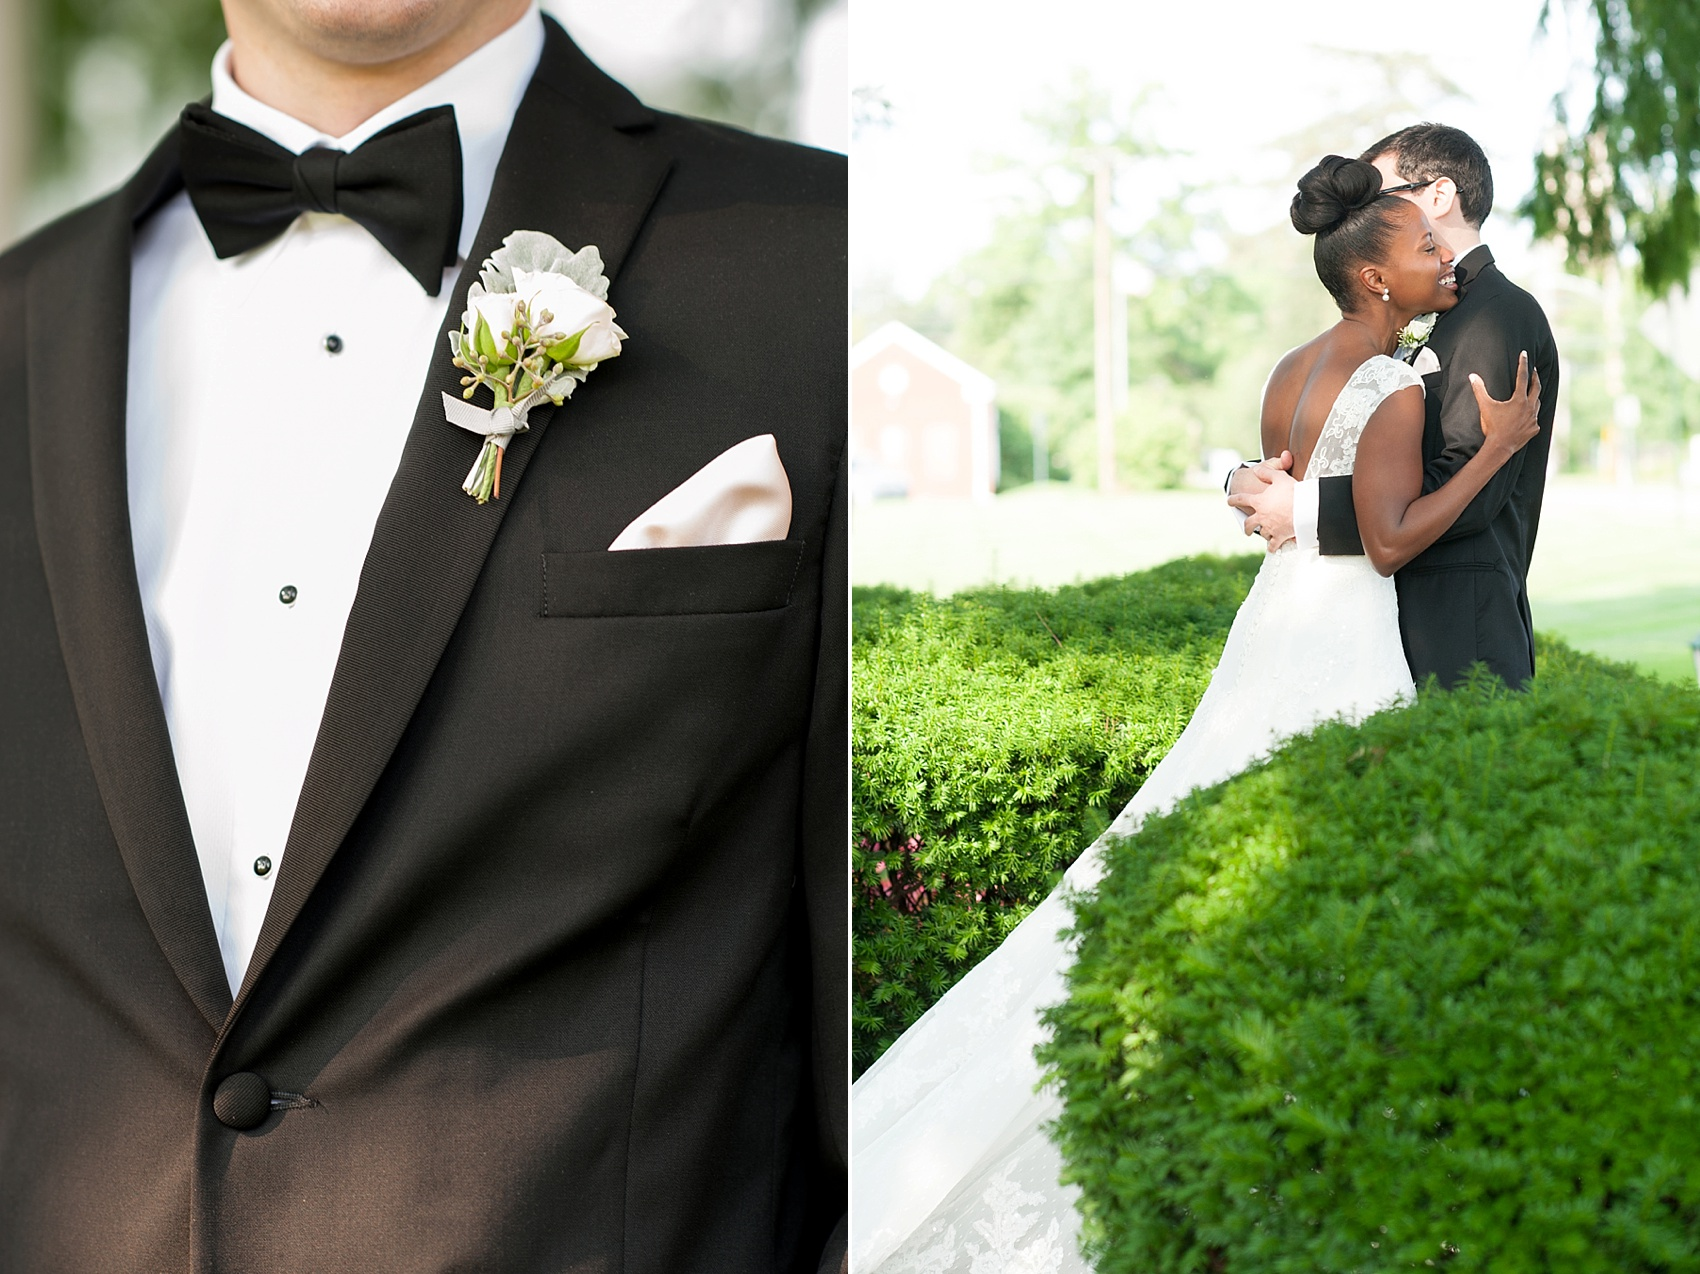 Groom's tuxedo from Black by Vera Wang at The Conservatory at the Madison Hotel, New Jersey. Photos by Mikkel Paige Photography.